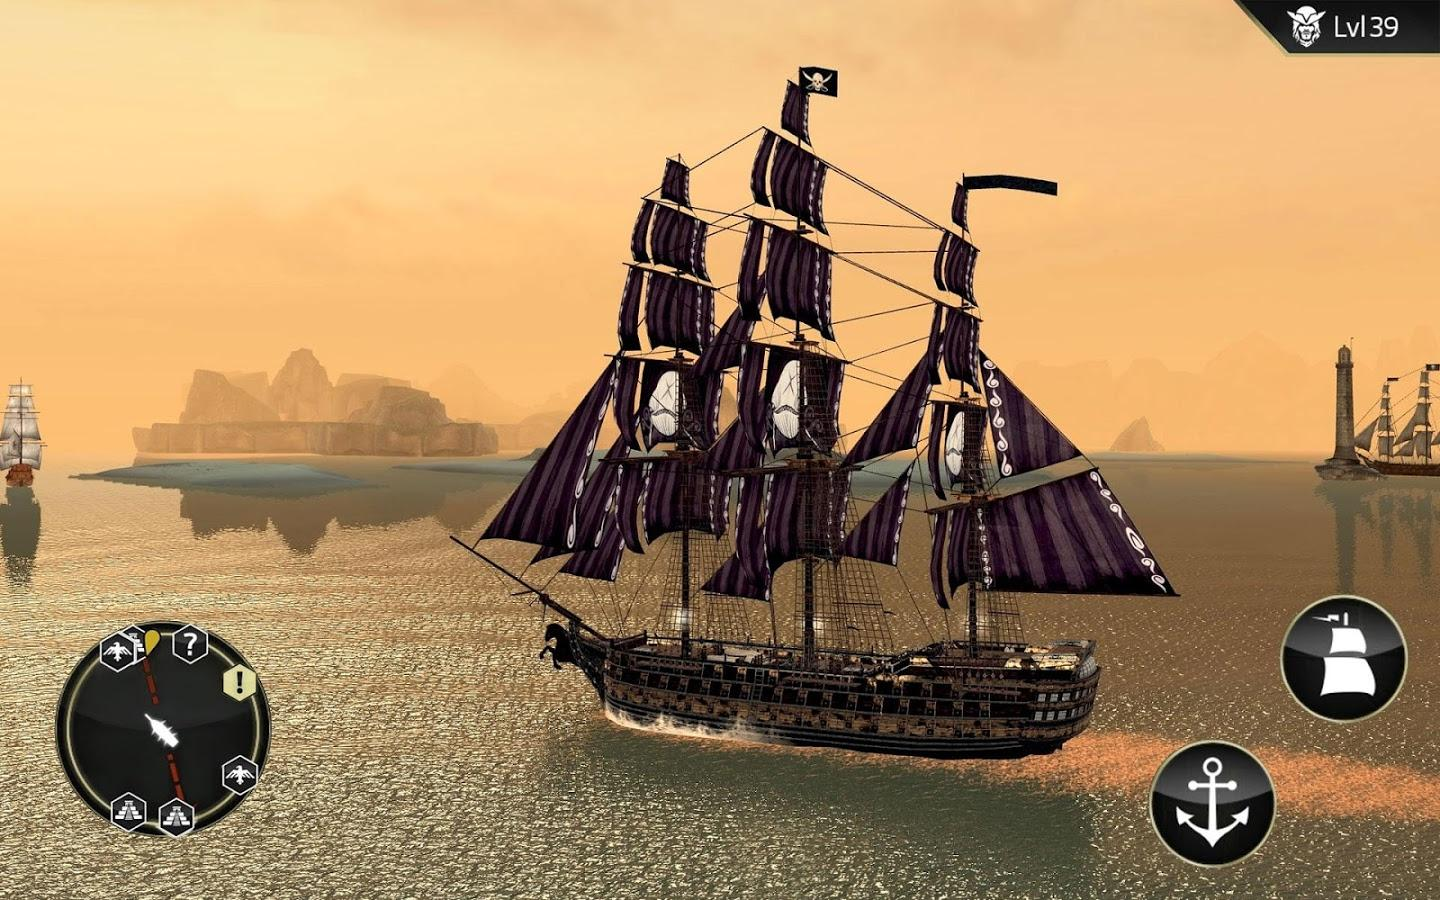 Assassin's Creed Pirates (MOD APK, Unlimited Money) v2.9.1 7